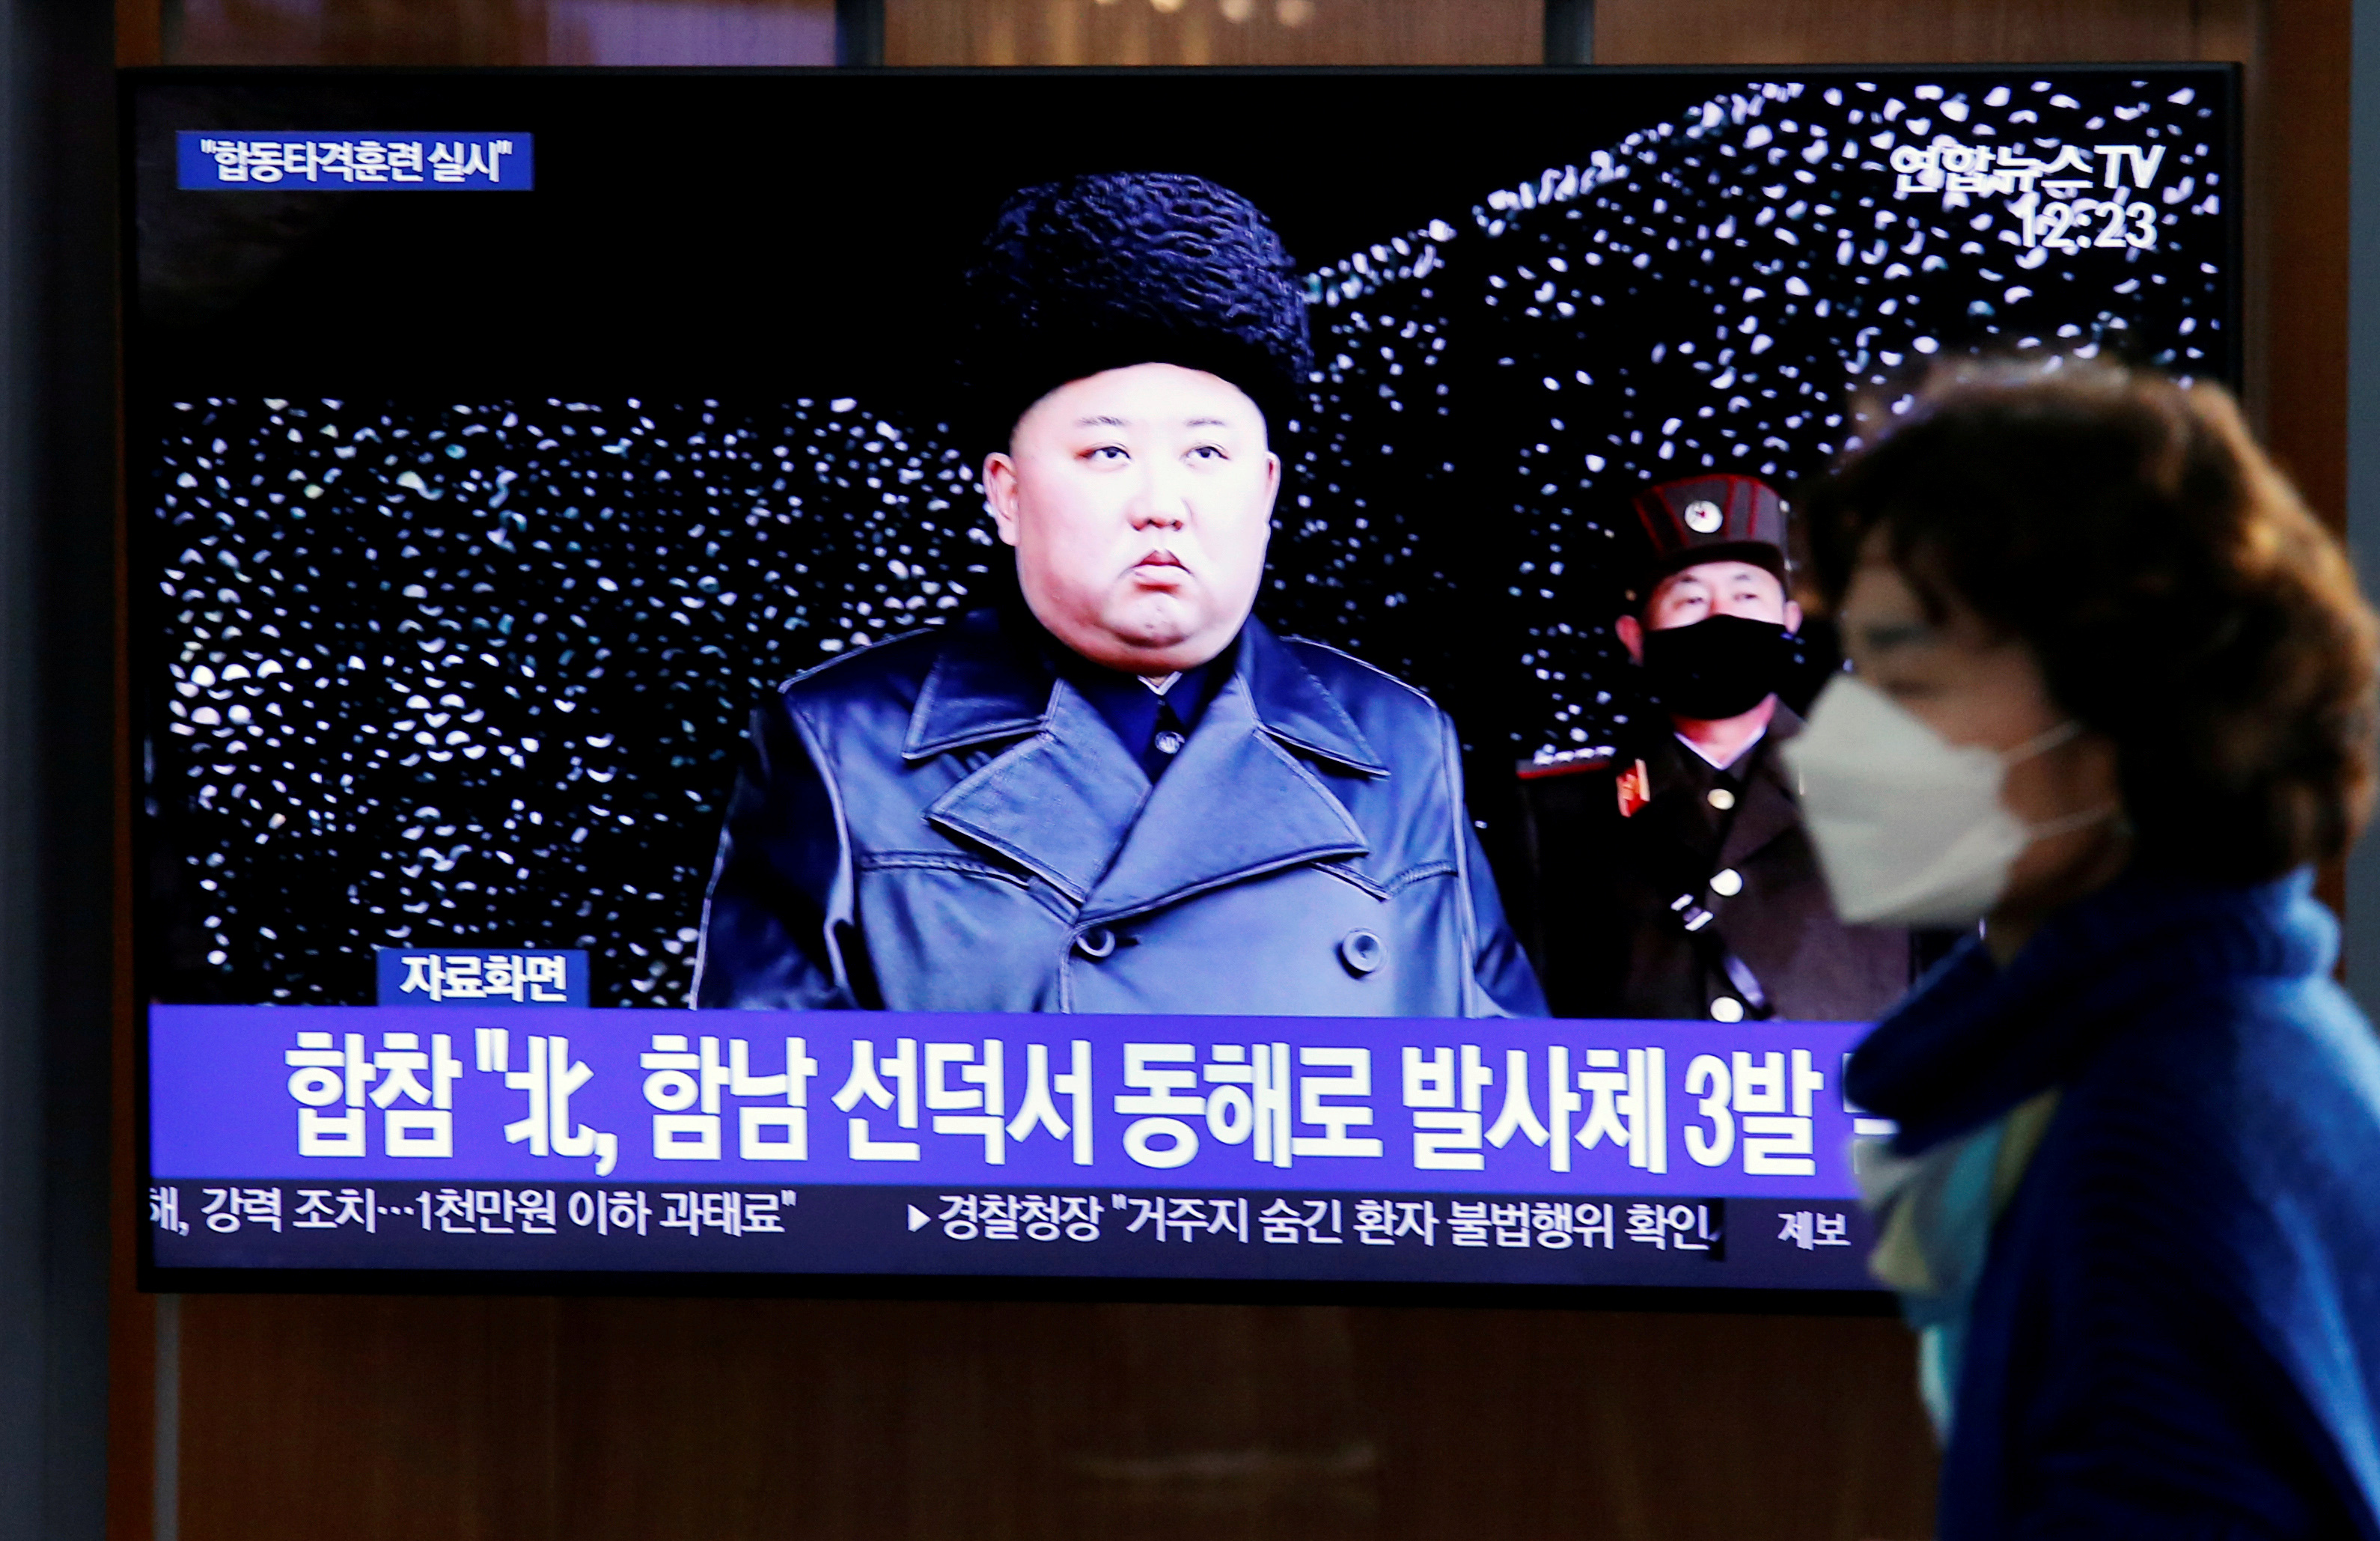 N.Korea warns of naval tensions during search for slain S.Korean